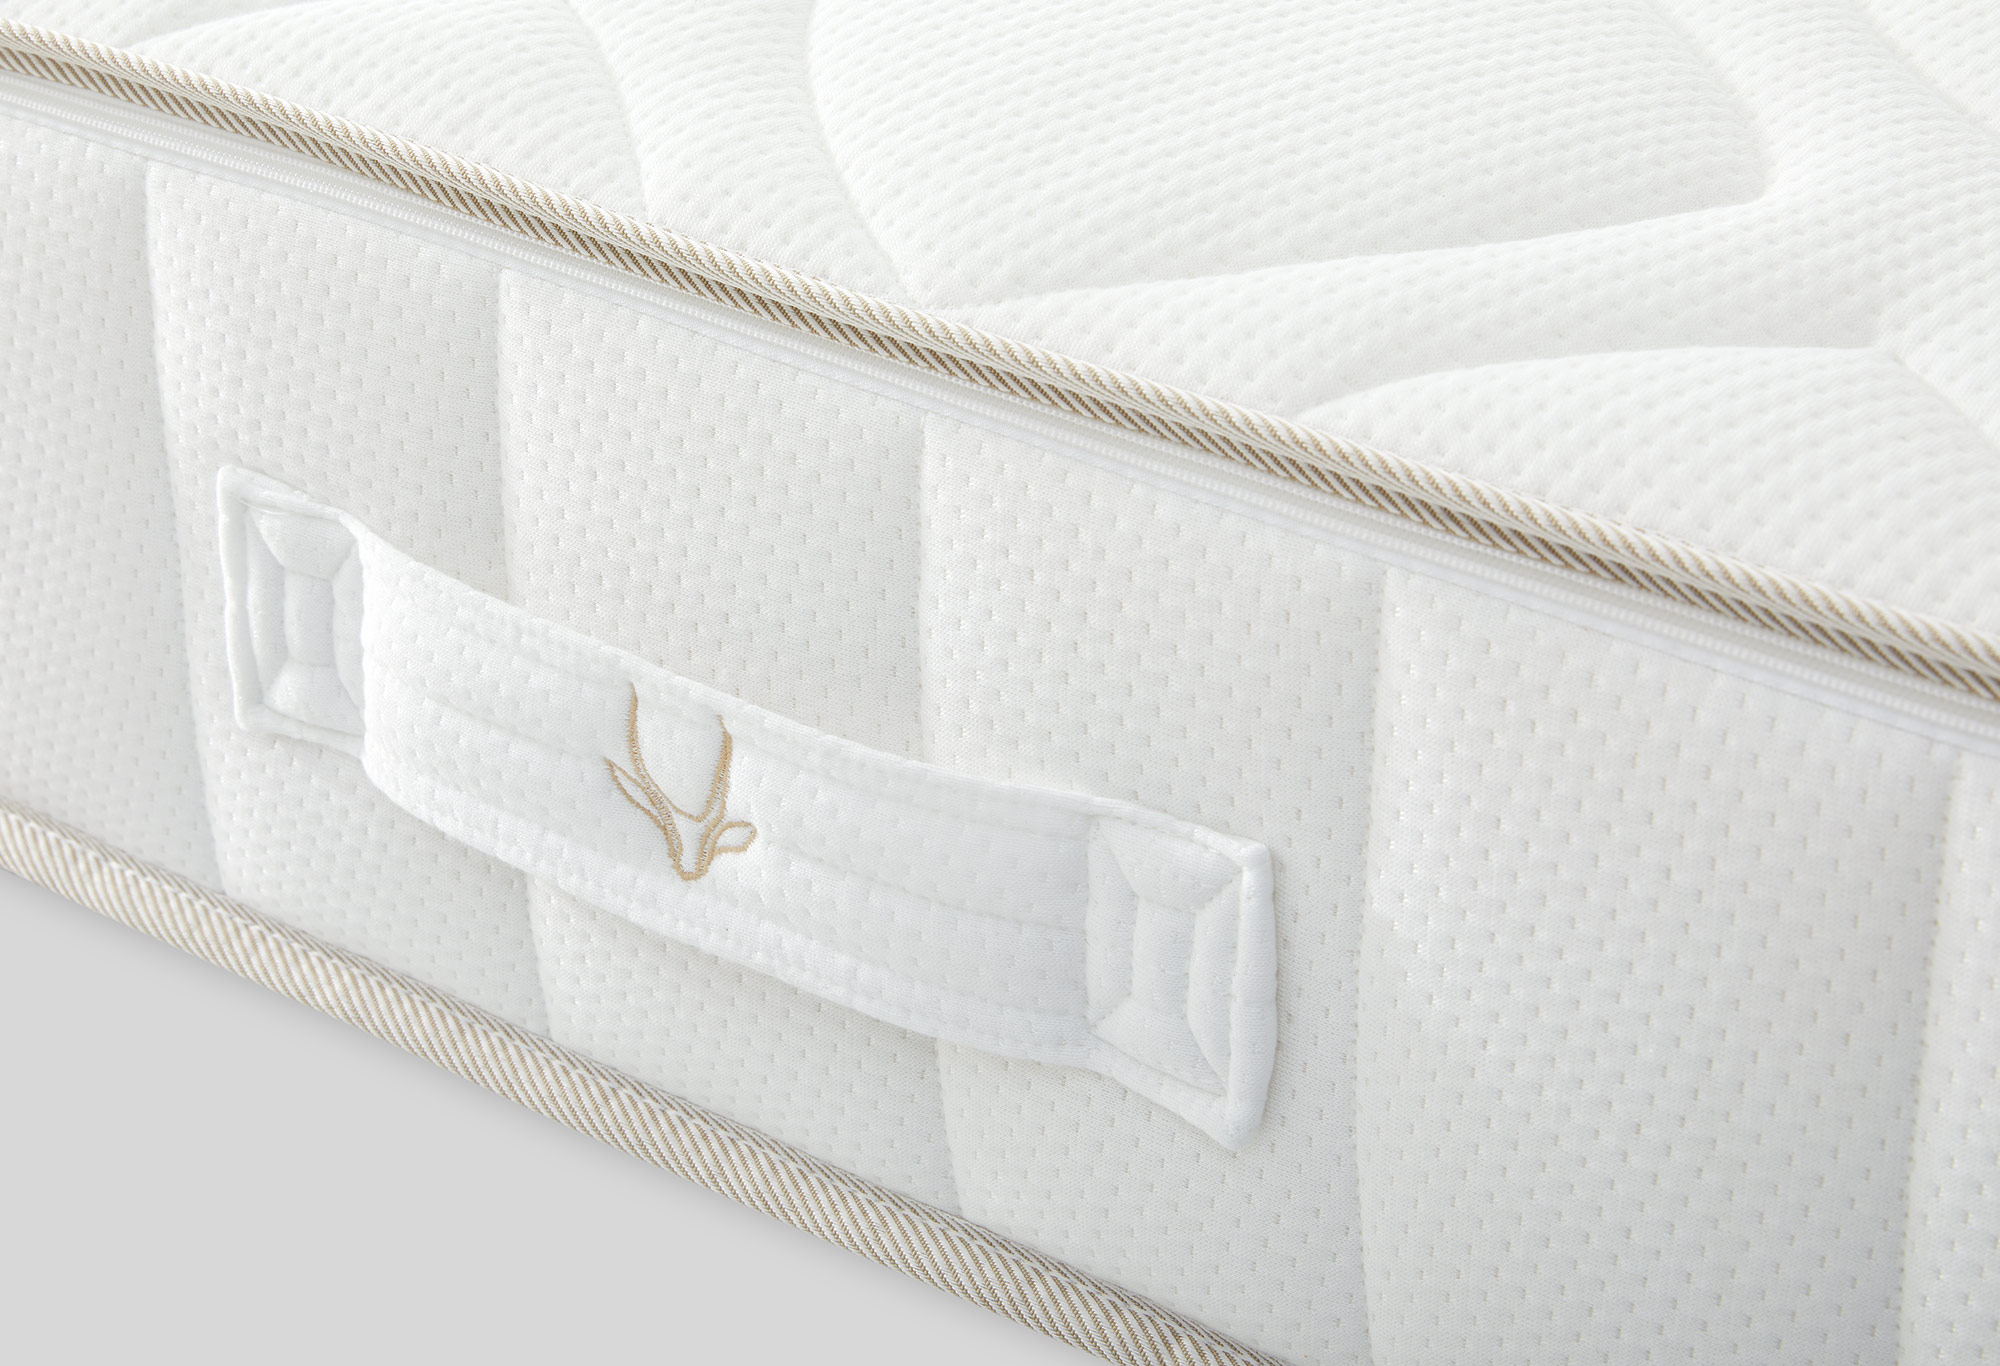 Gazella Breeze II Pocketvering Matras Detail | Swiss Sense